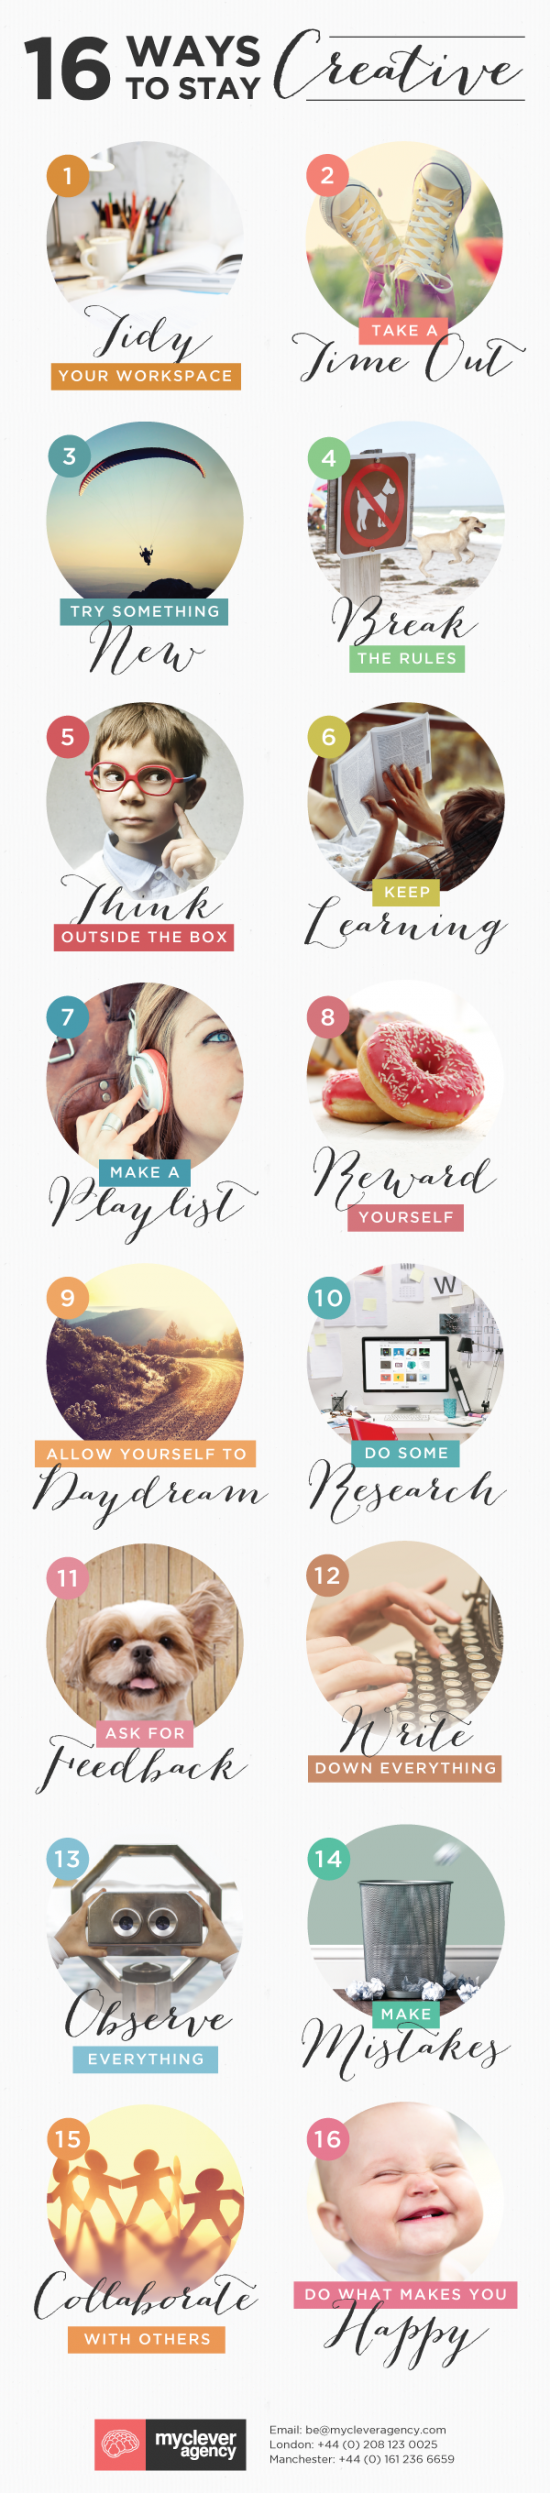 16 ways to stay creative Infographic